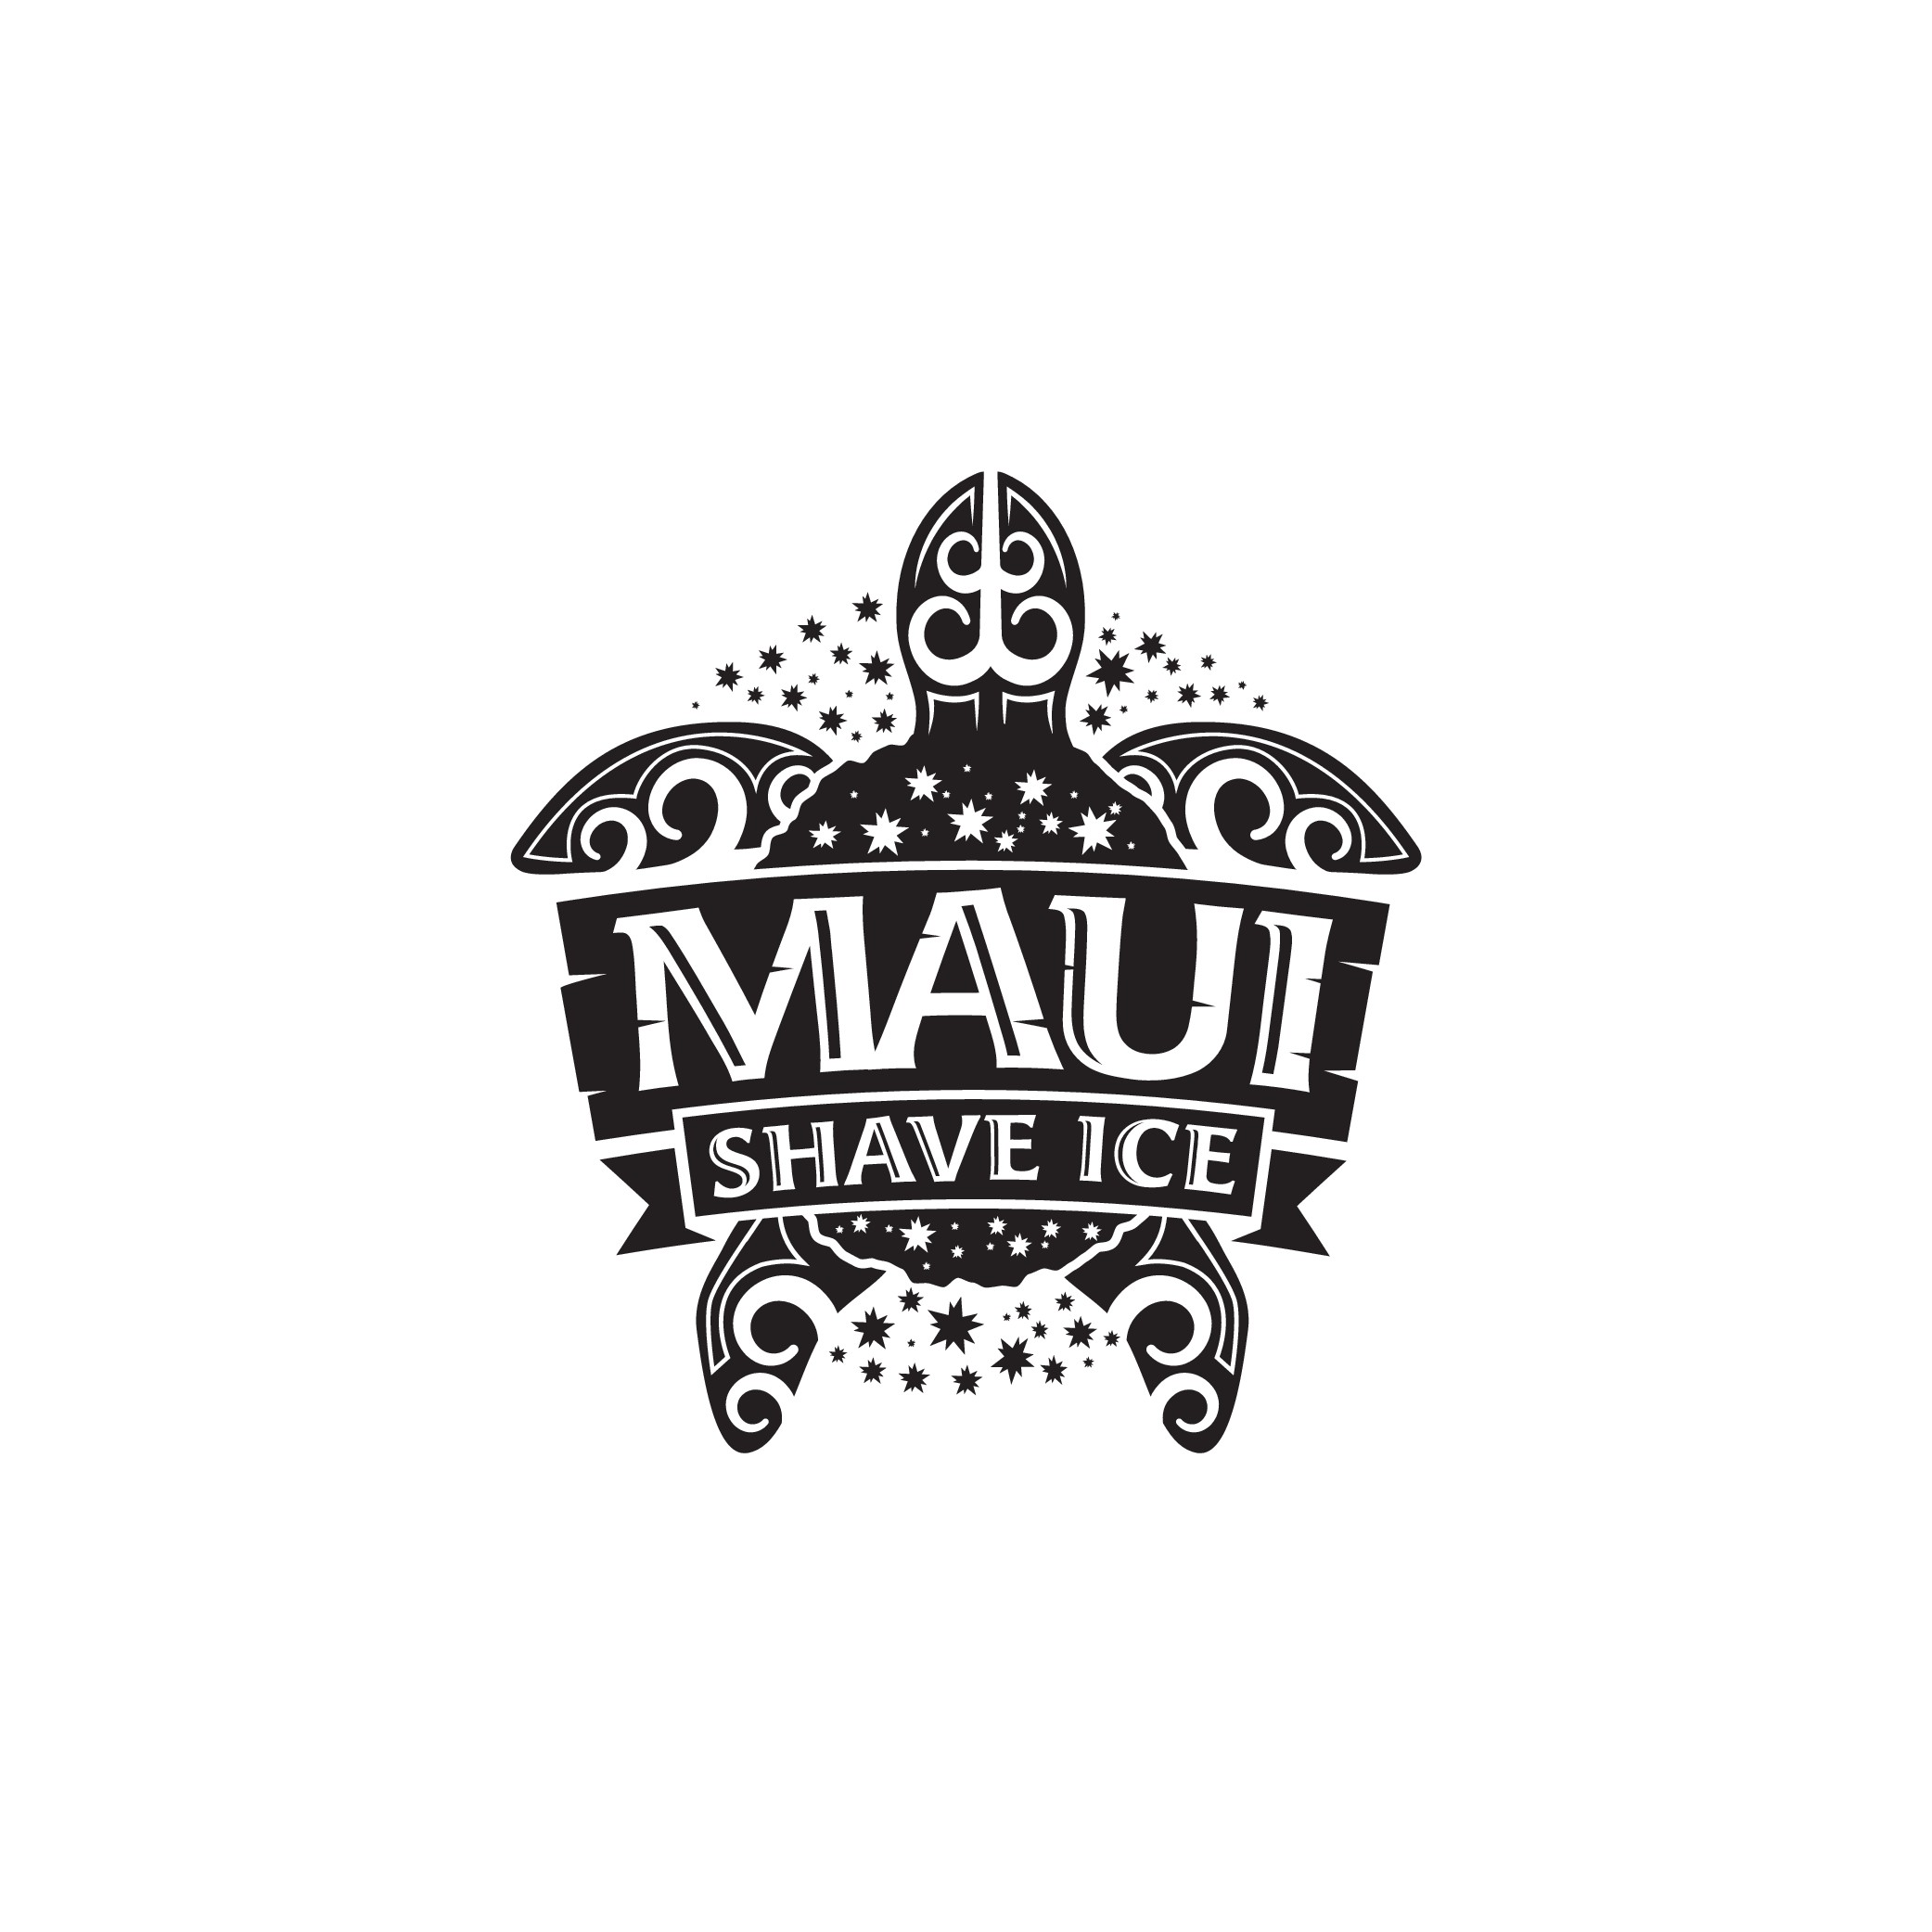 Logo needed for authentic Hawaiian shave ice company appealing to kids and adults